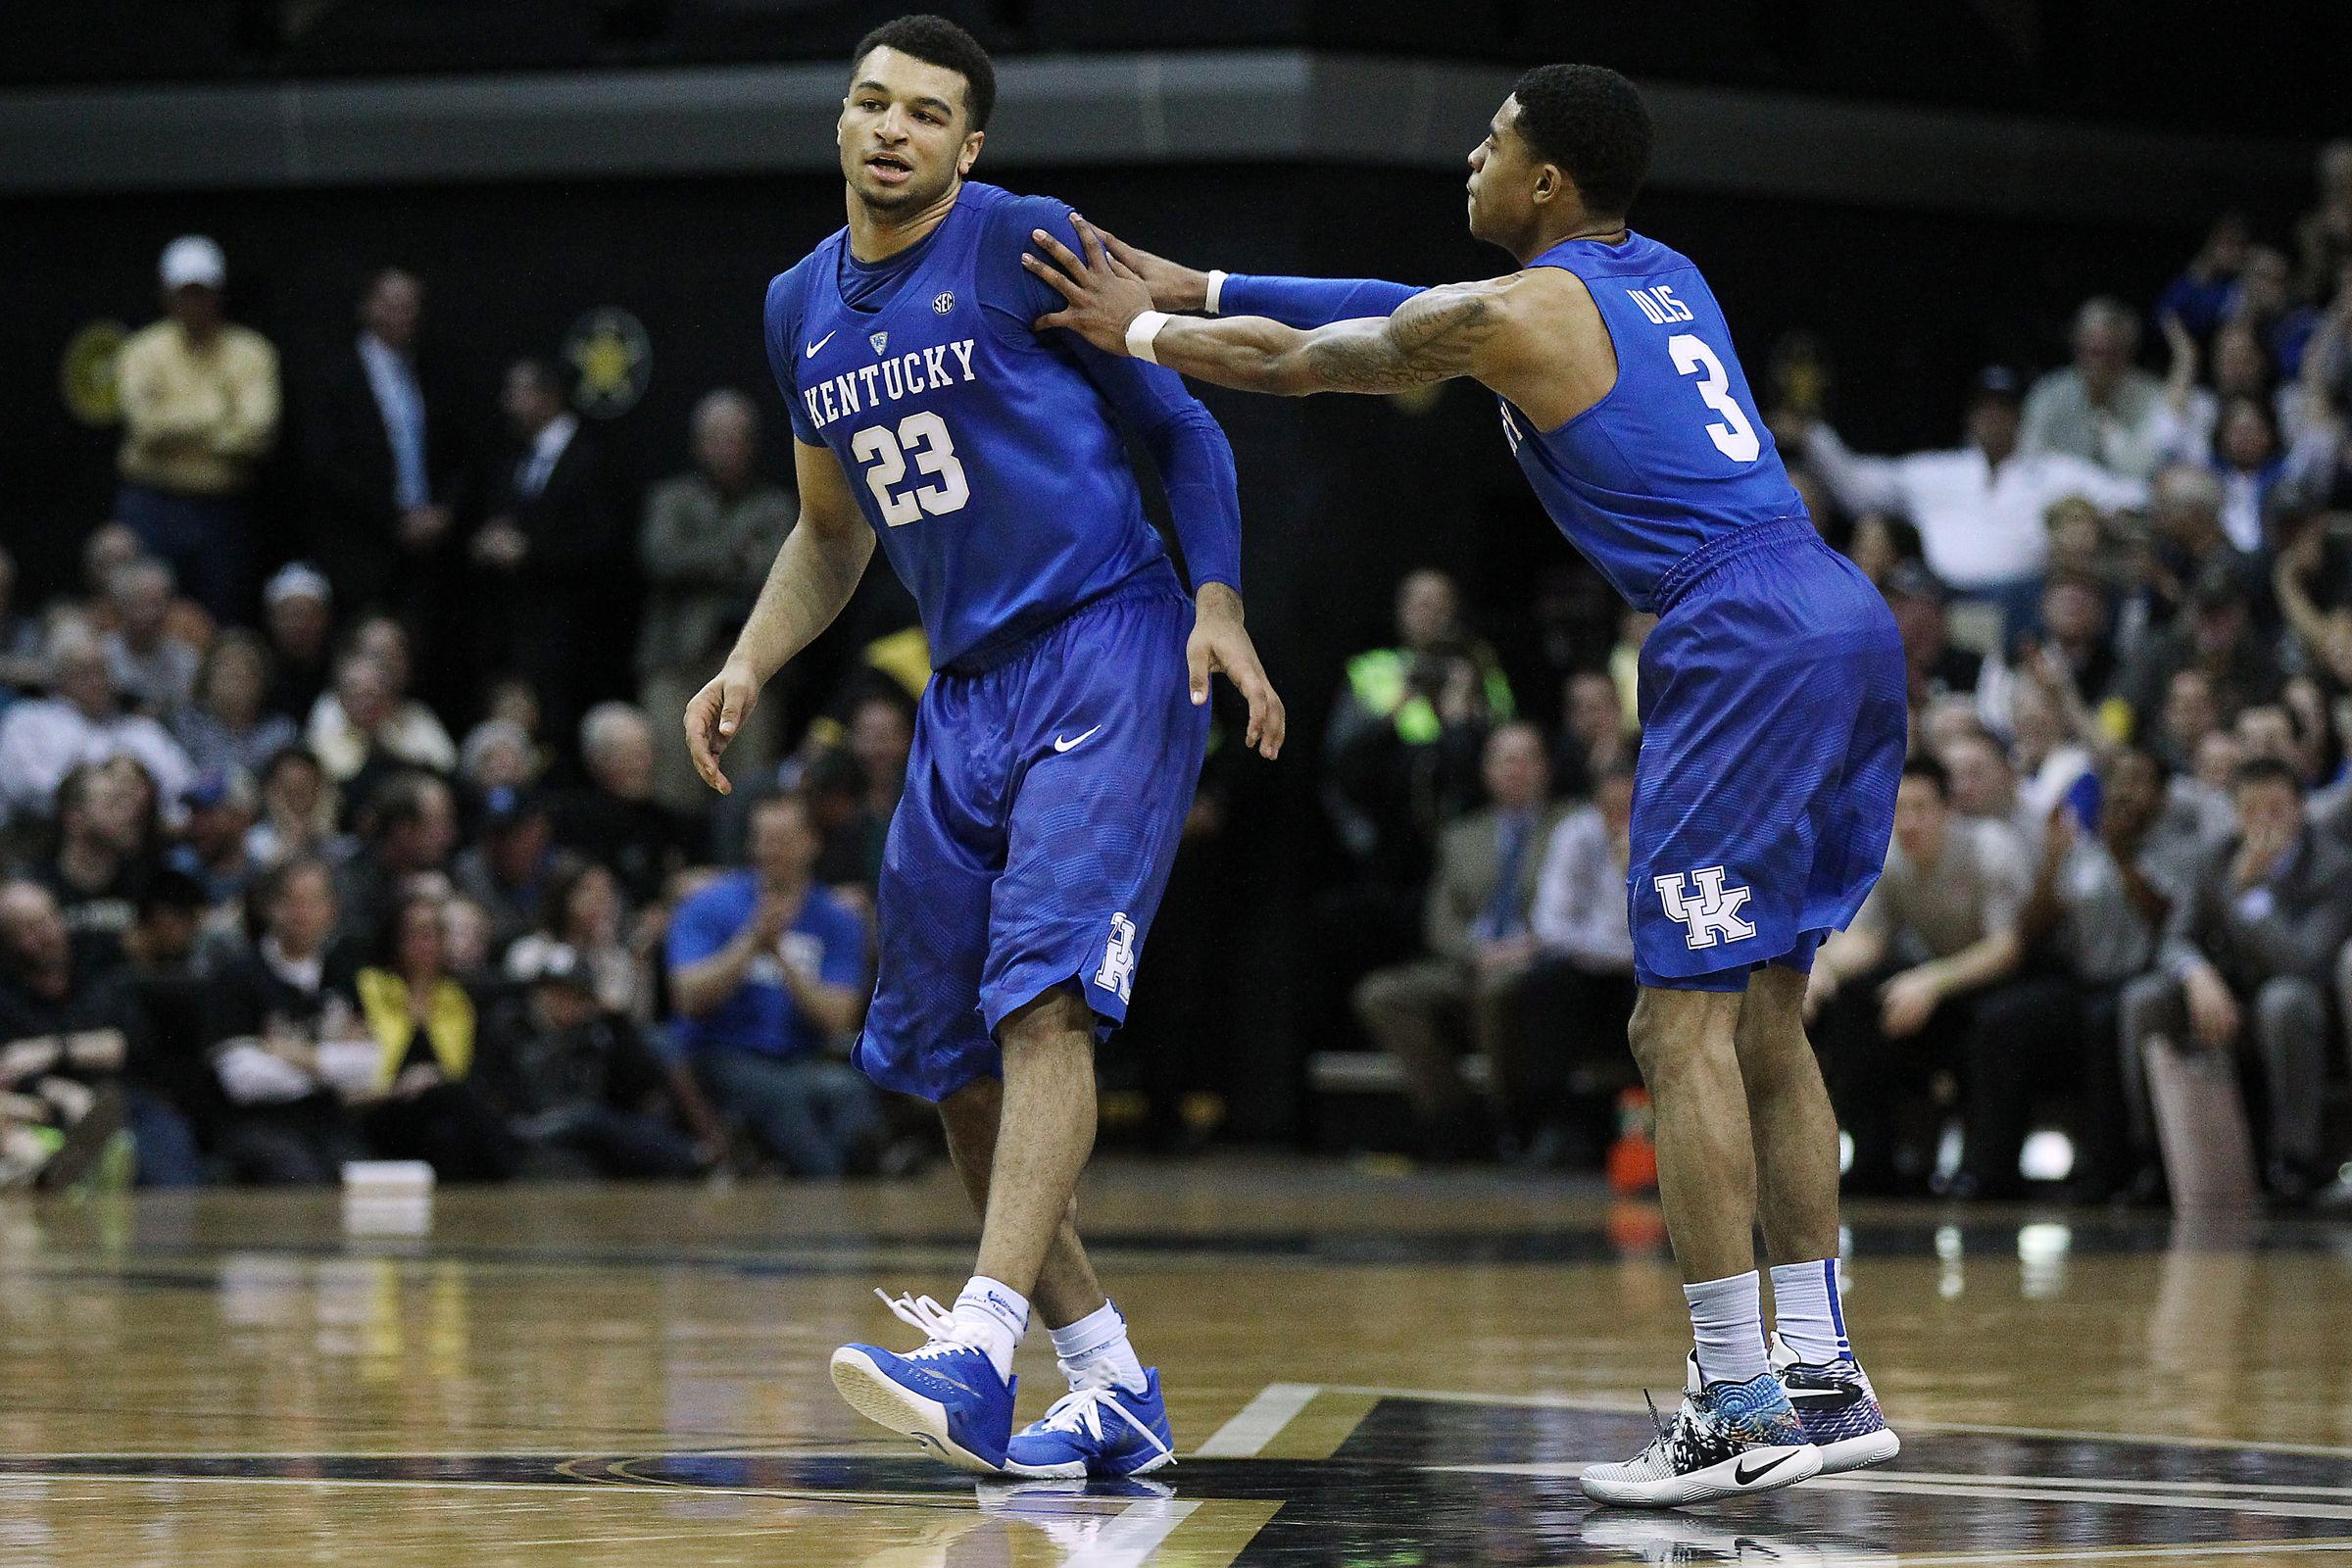 Tyler Ulis and Jamal Murray are two of the nation's best guards in the country. It should come as no surprise then that one of them (Ulis) is a finalist for the Oscar Robertson Trophy (national player of the year) and the other (Jamal Murray) is one of five finalists for the Wayman Tisdale Award (national freshman of the year).